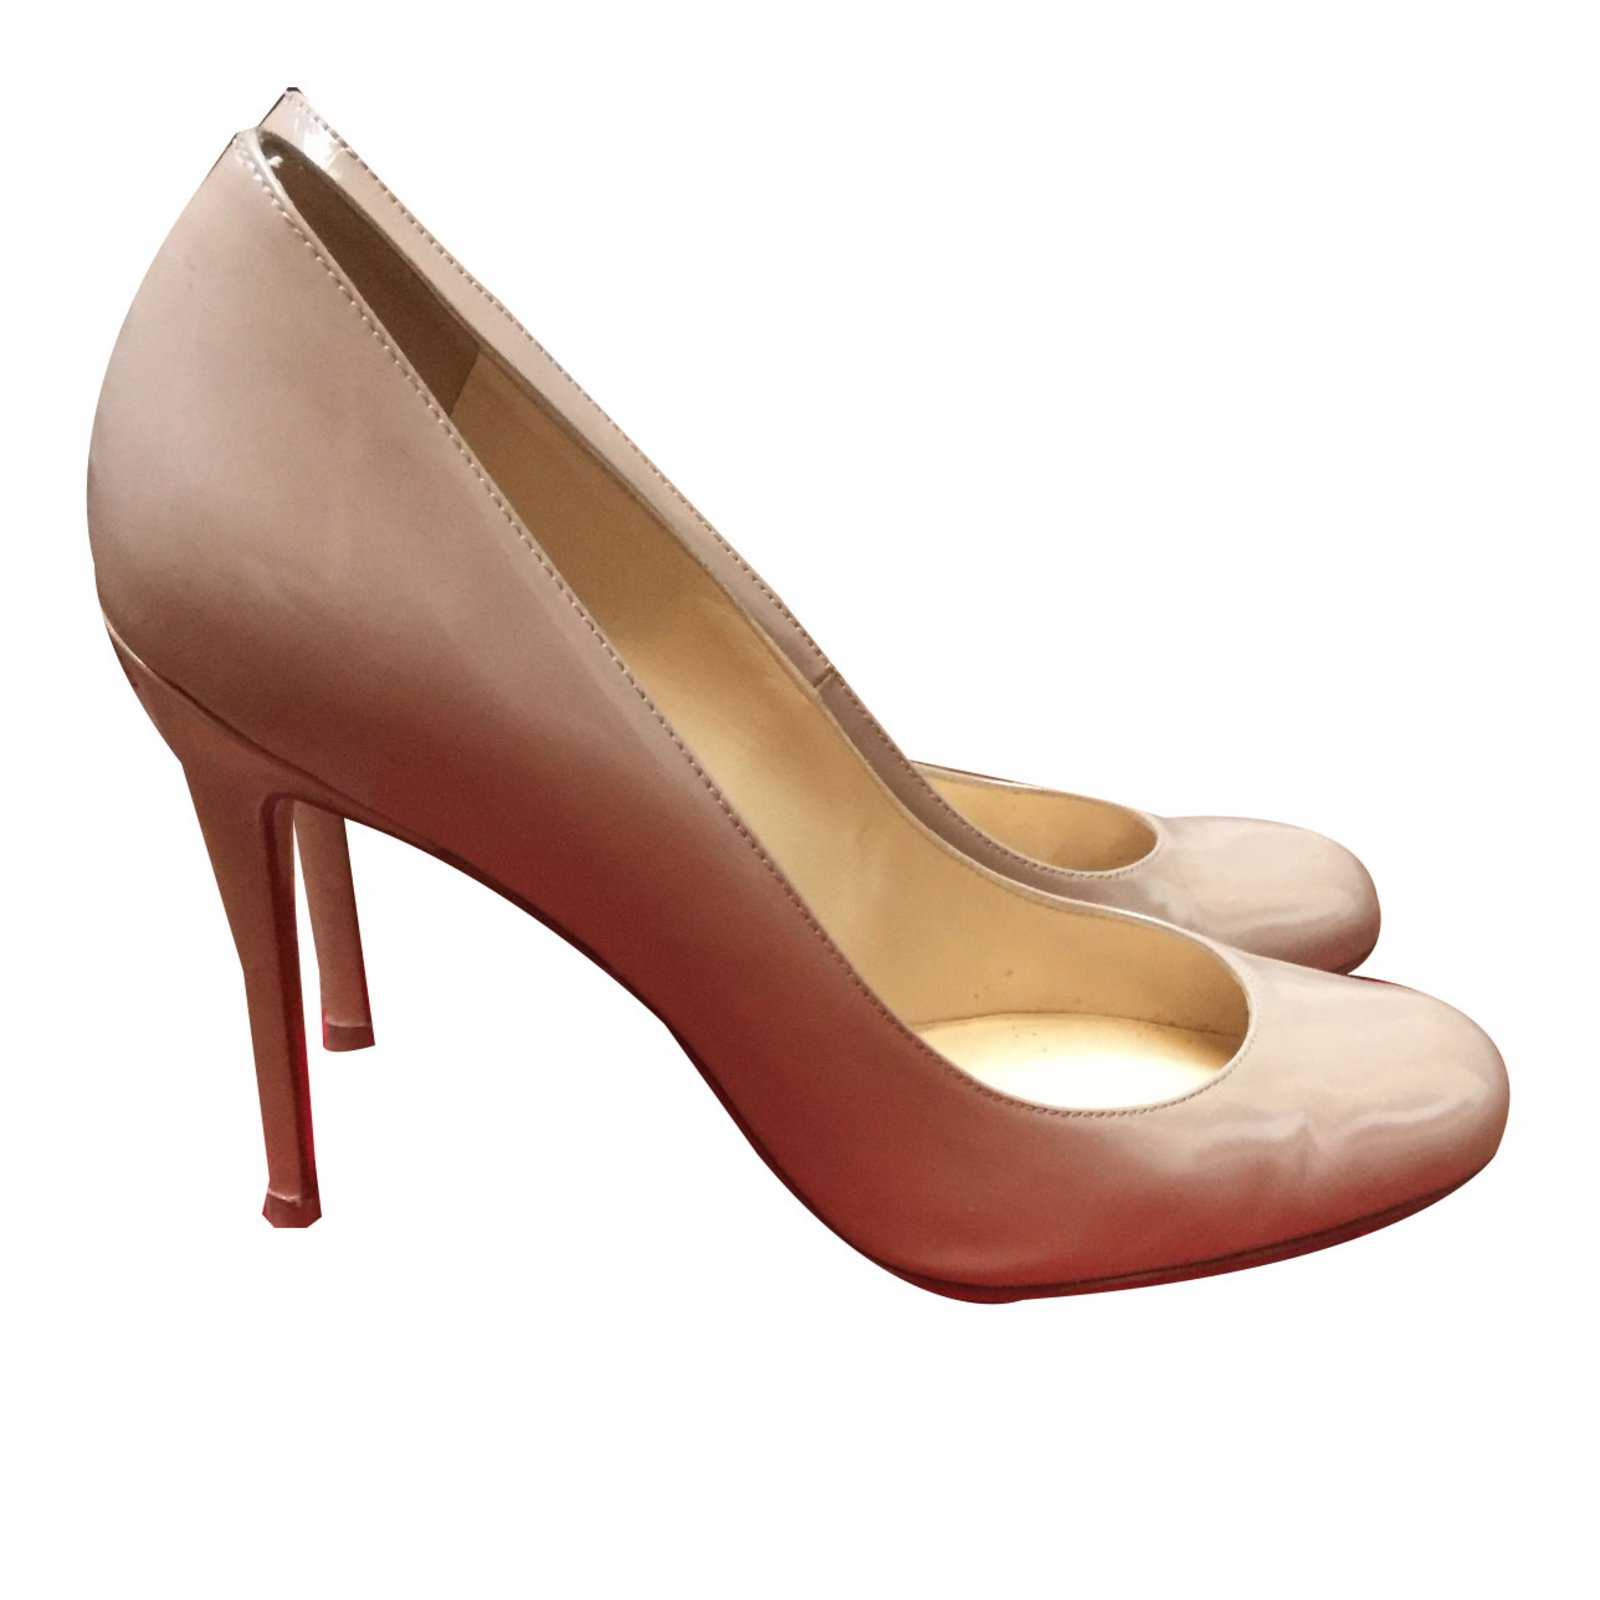 aceadcad03b8 Christian Louboutin Simple pump Heels Patent leather Beige ref.46850 ...